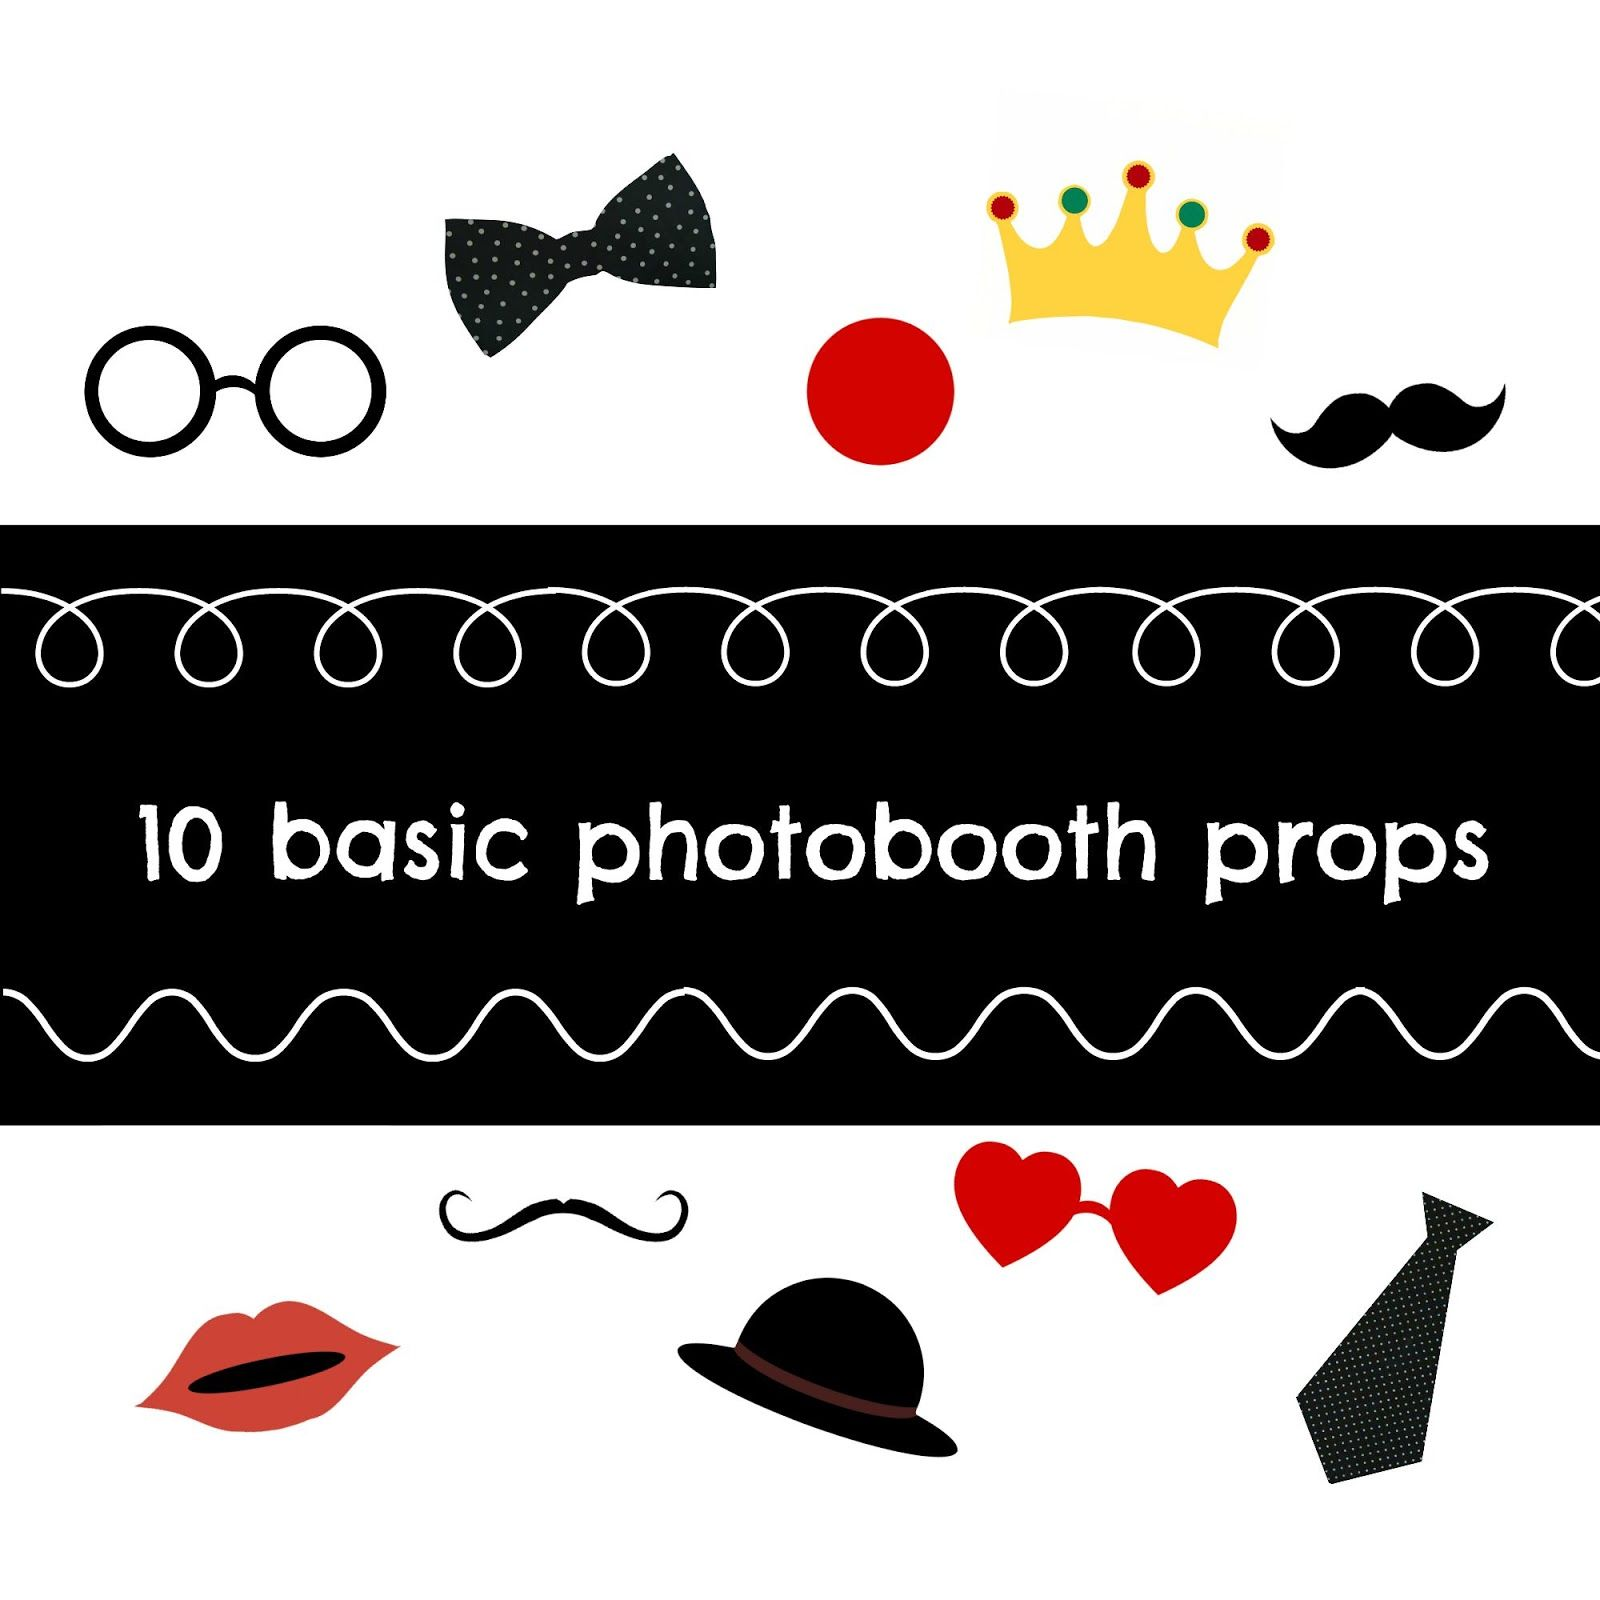 10 basic free printable potobooth props for making your parties more enjoyable - The Optimistic Side